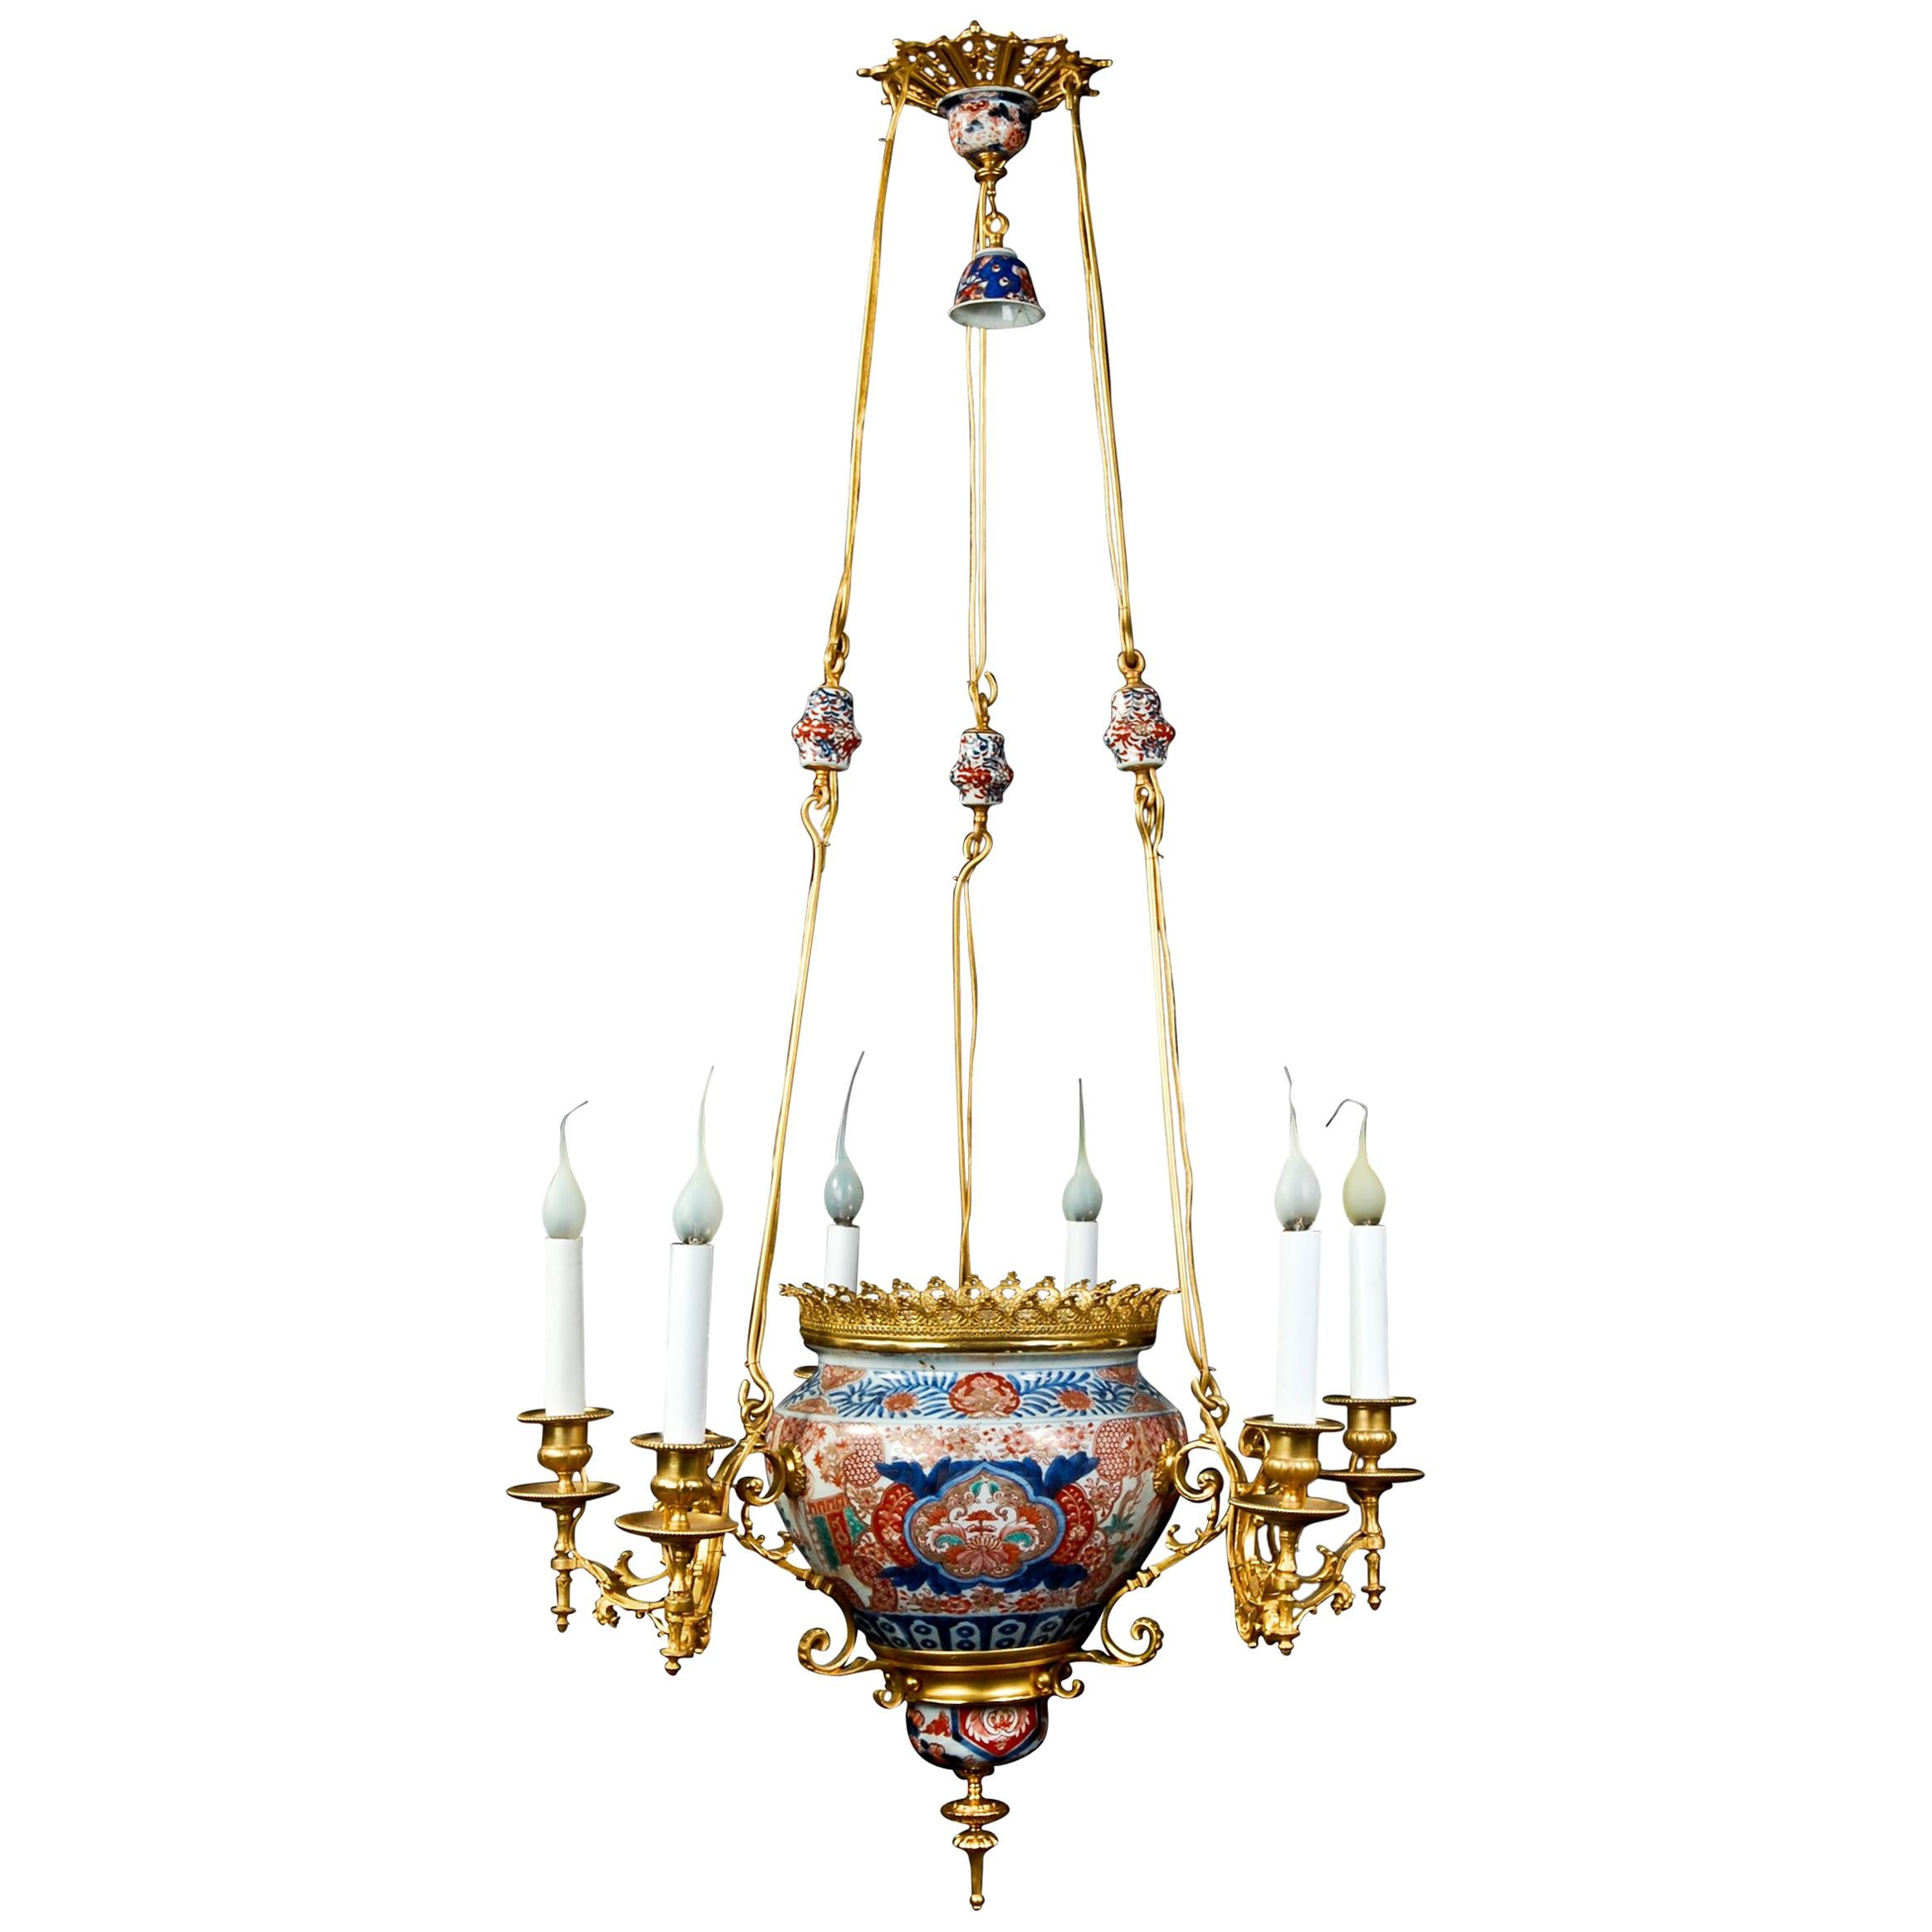 Antique French Chinoiserie Style Gilt Bronze and Chinese Porcelain Chandelier